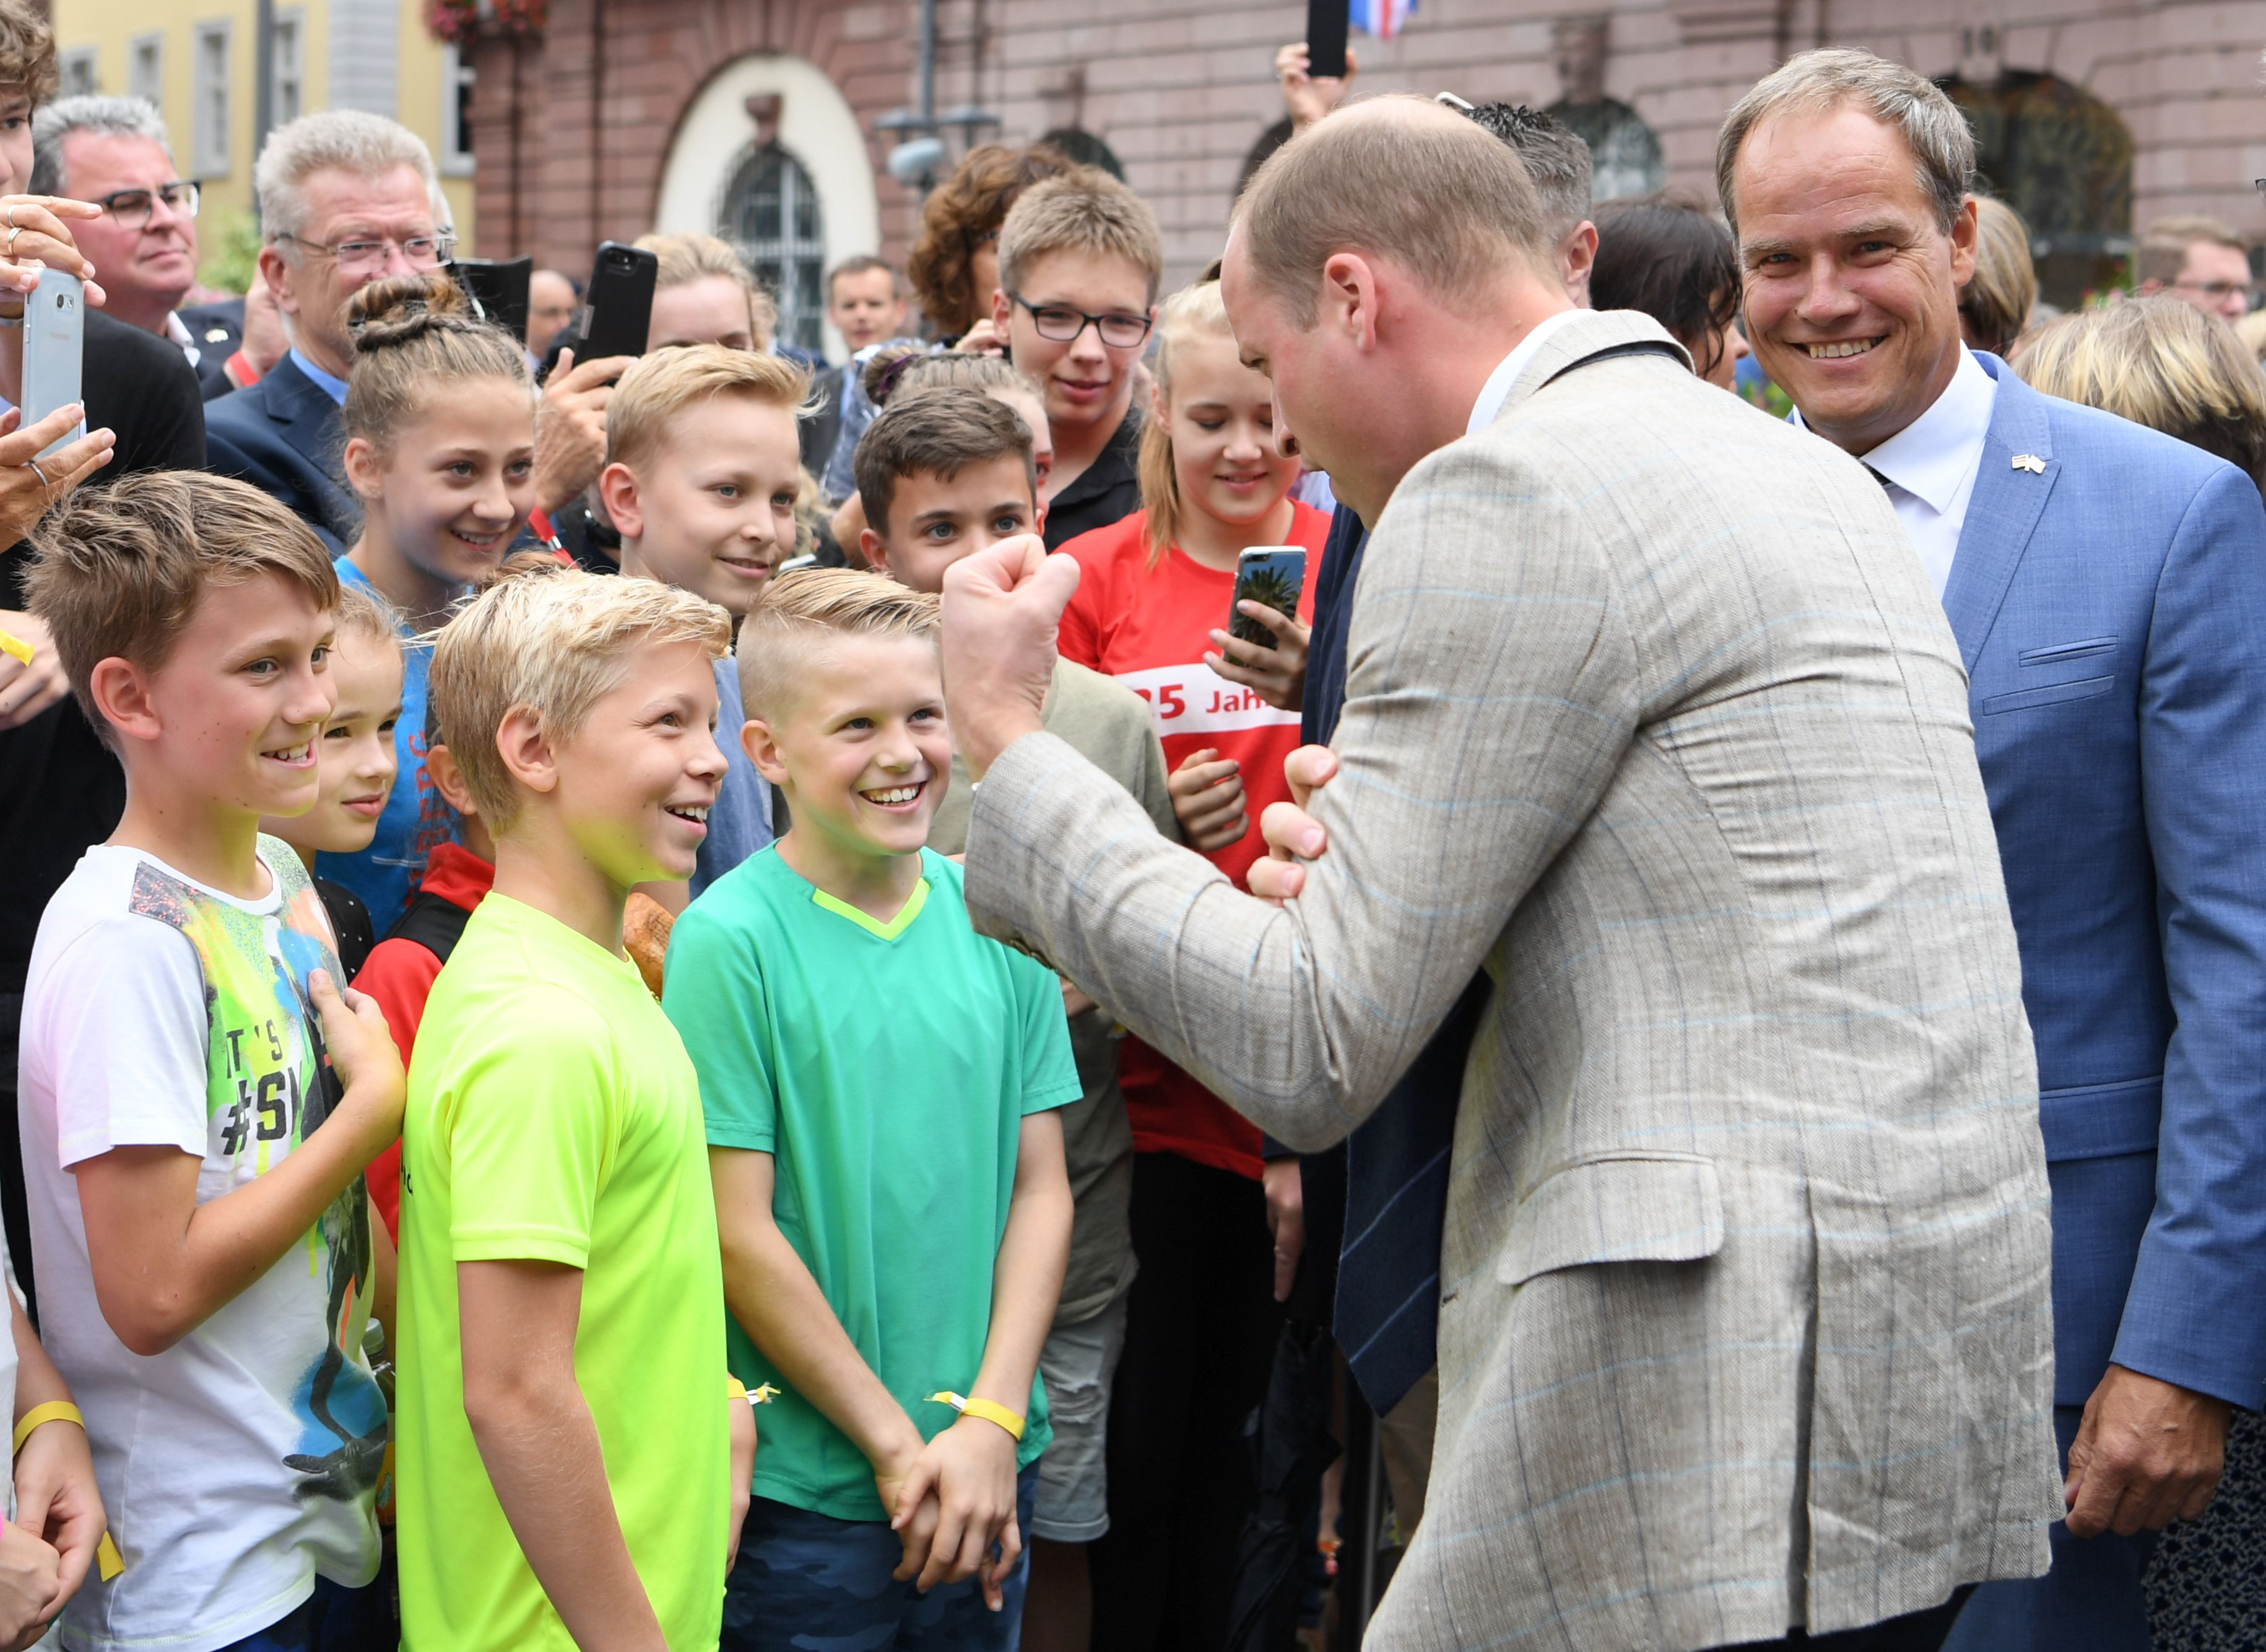 Prince William, Duke of Cambridge, talks to children during a visit to the market in the historic center of southern town of Heidelbergon, Germany, on July 20, 2017.